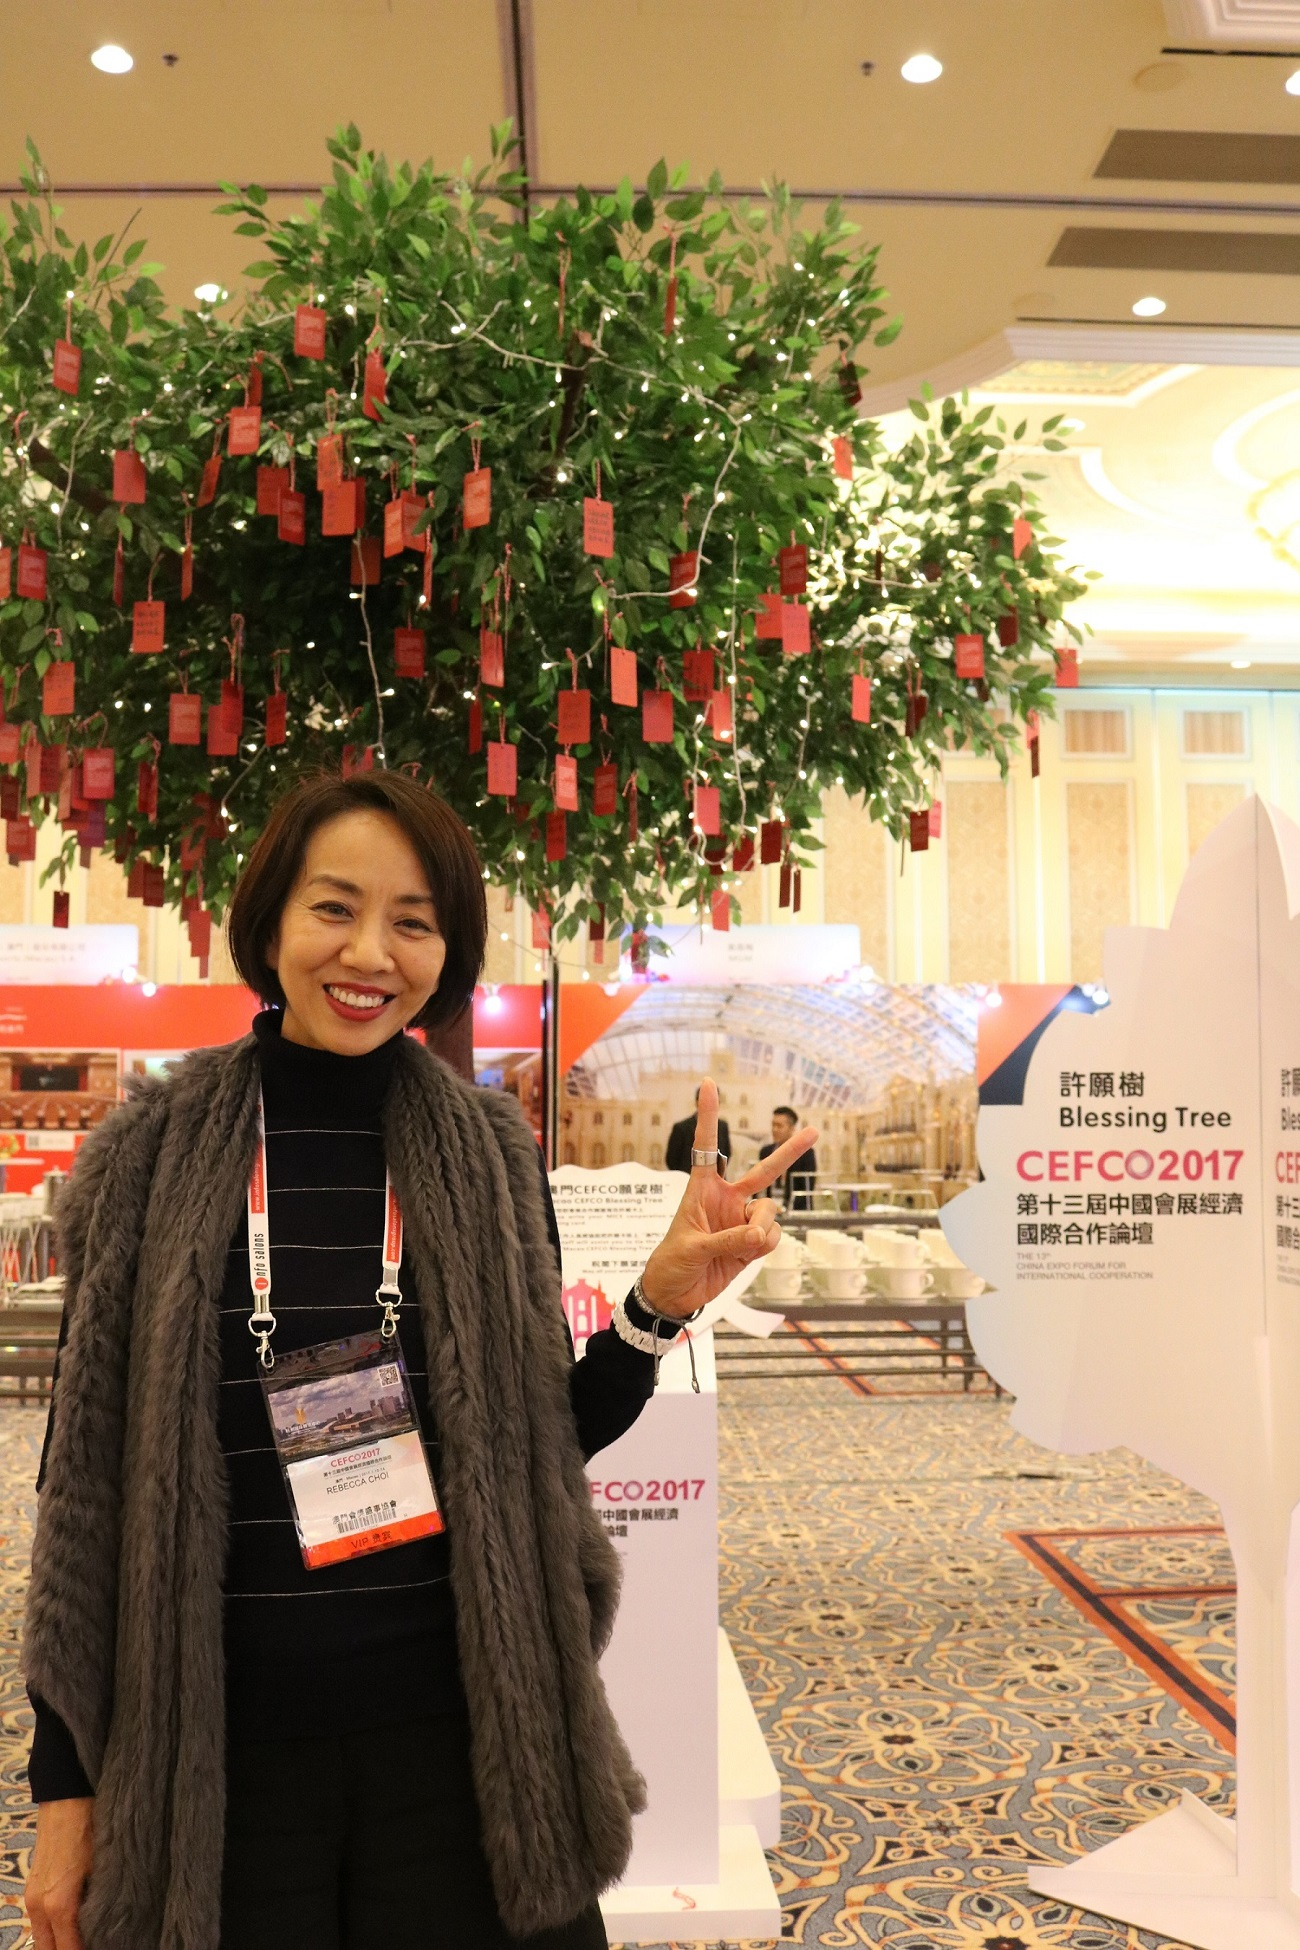 Ms. Rebecca Choi, Vice-President of Macau Meetings, Incentive and Special Events Association (MISE)